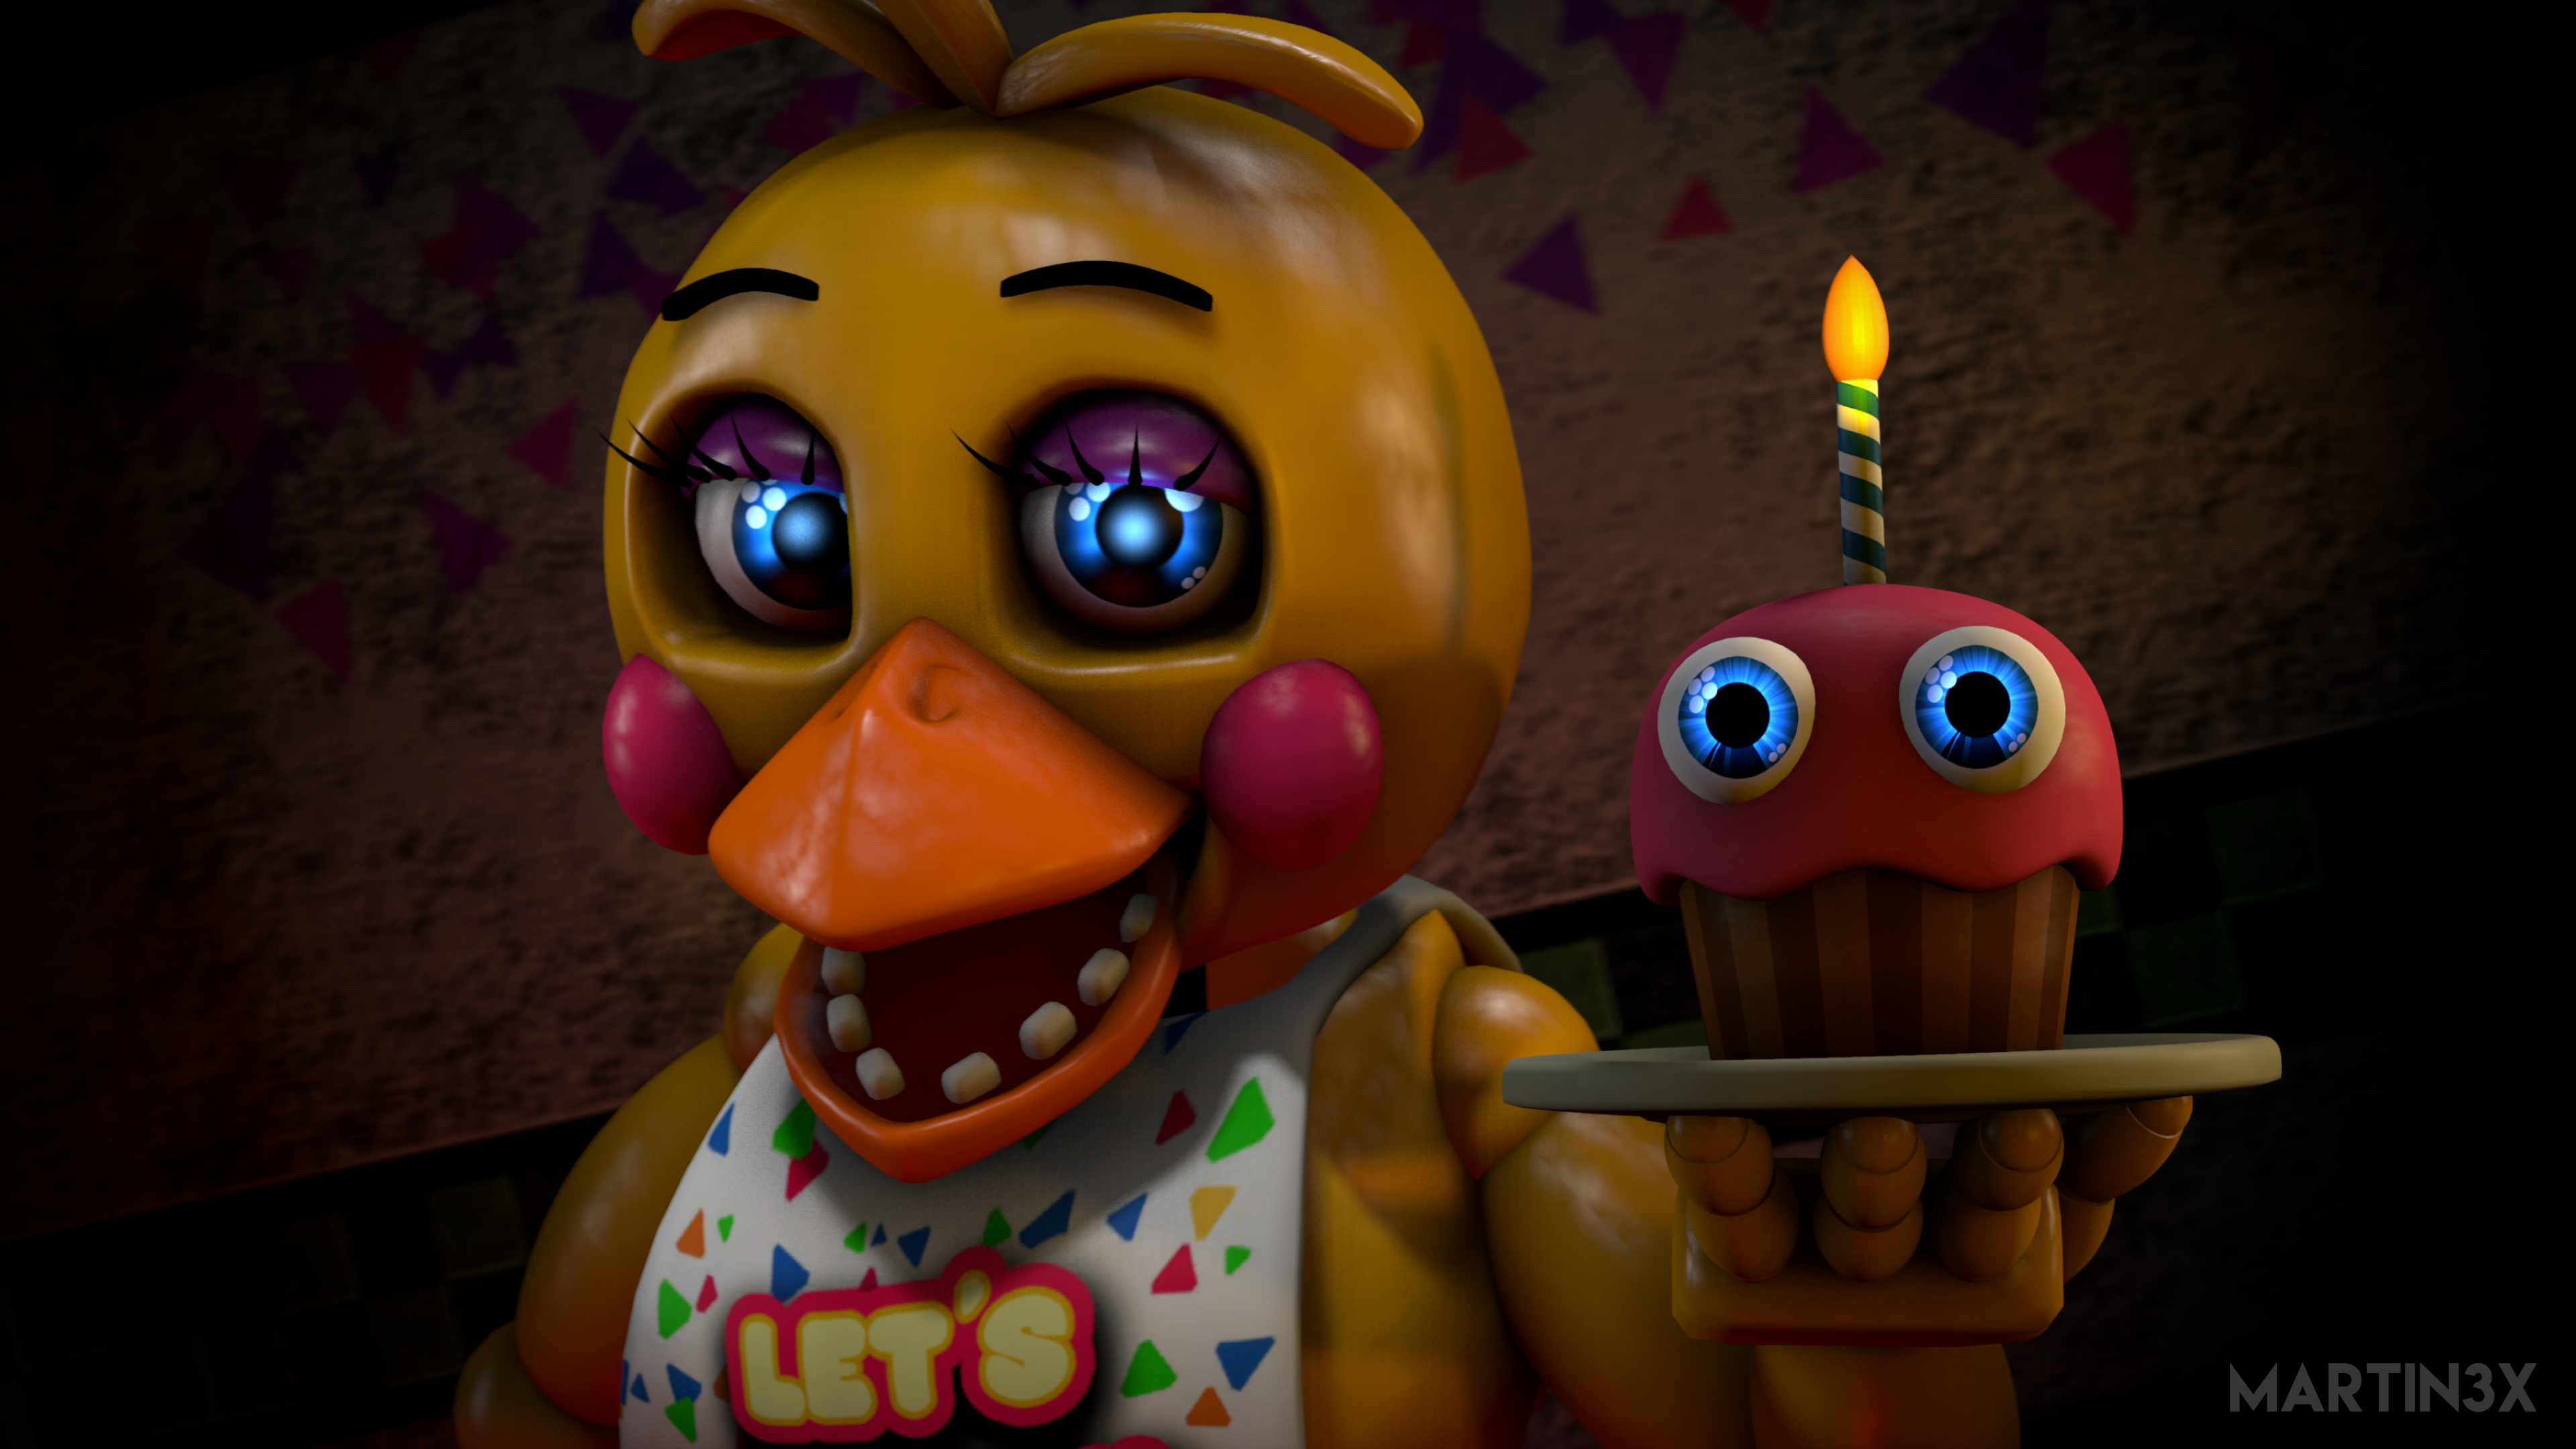 Toy Chica By MARTIN3X On DeviantArt